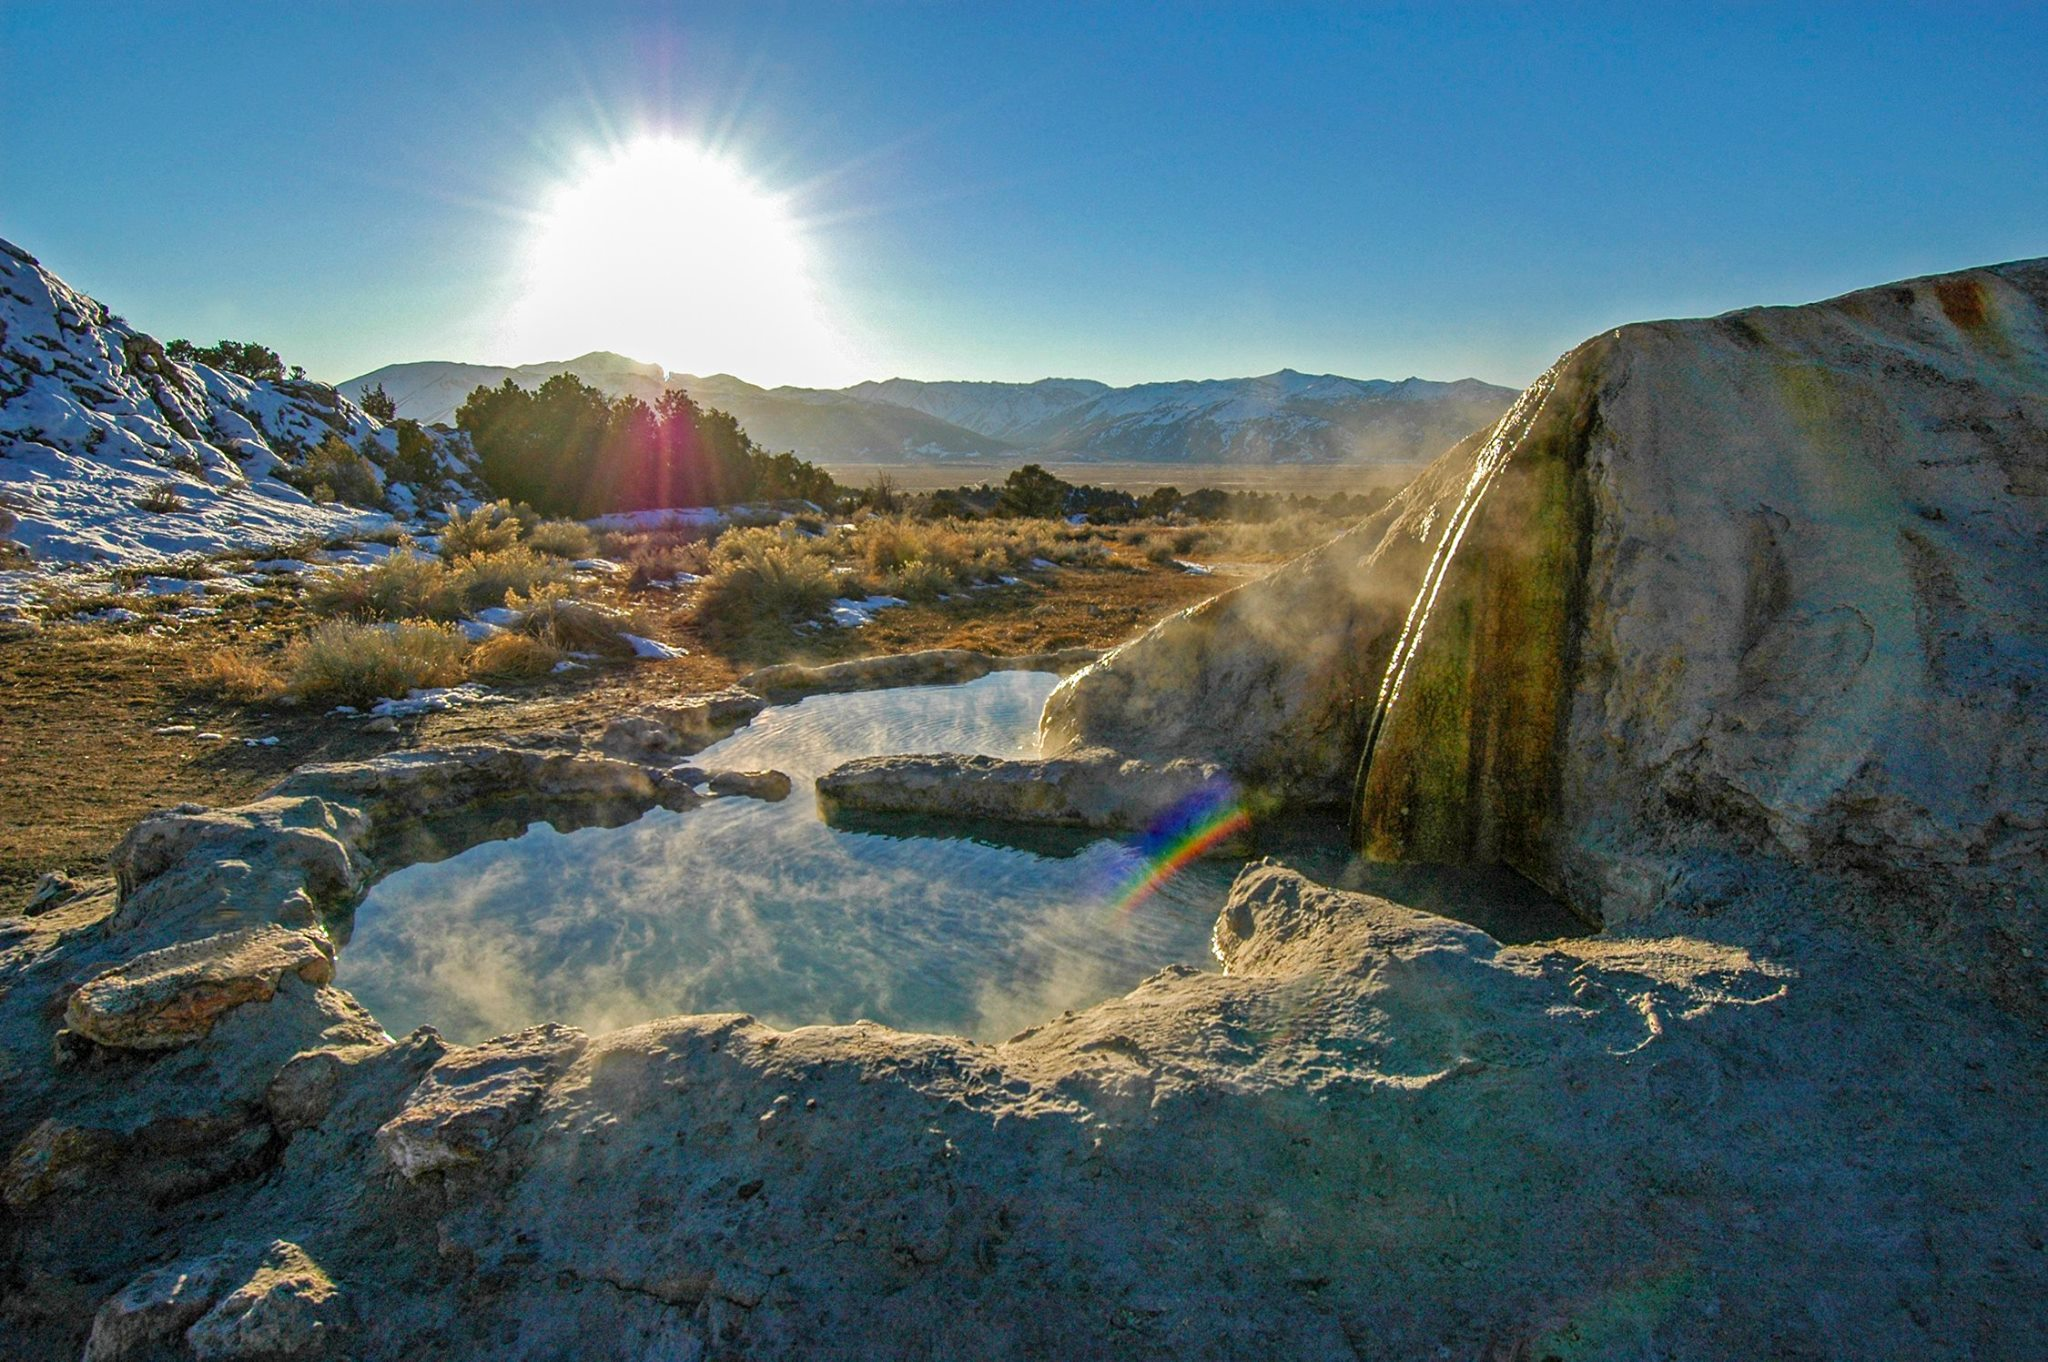 Eastern Sierra Hot Springs - Benton & Travertine - Mono County, CA